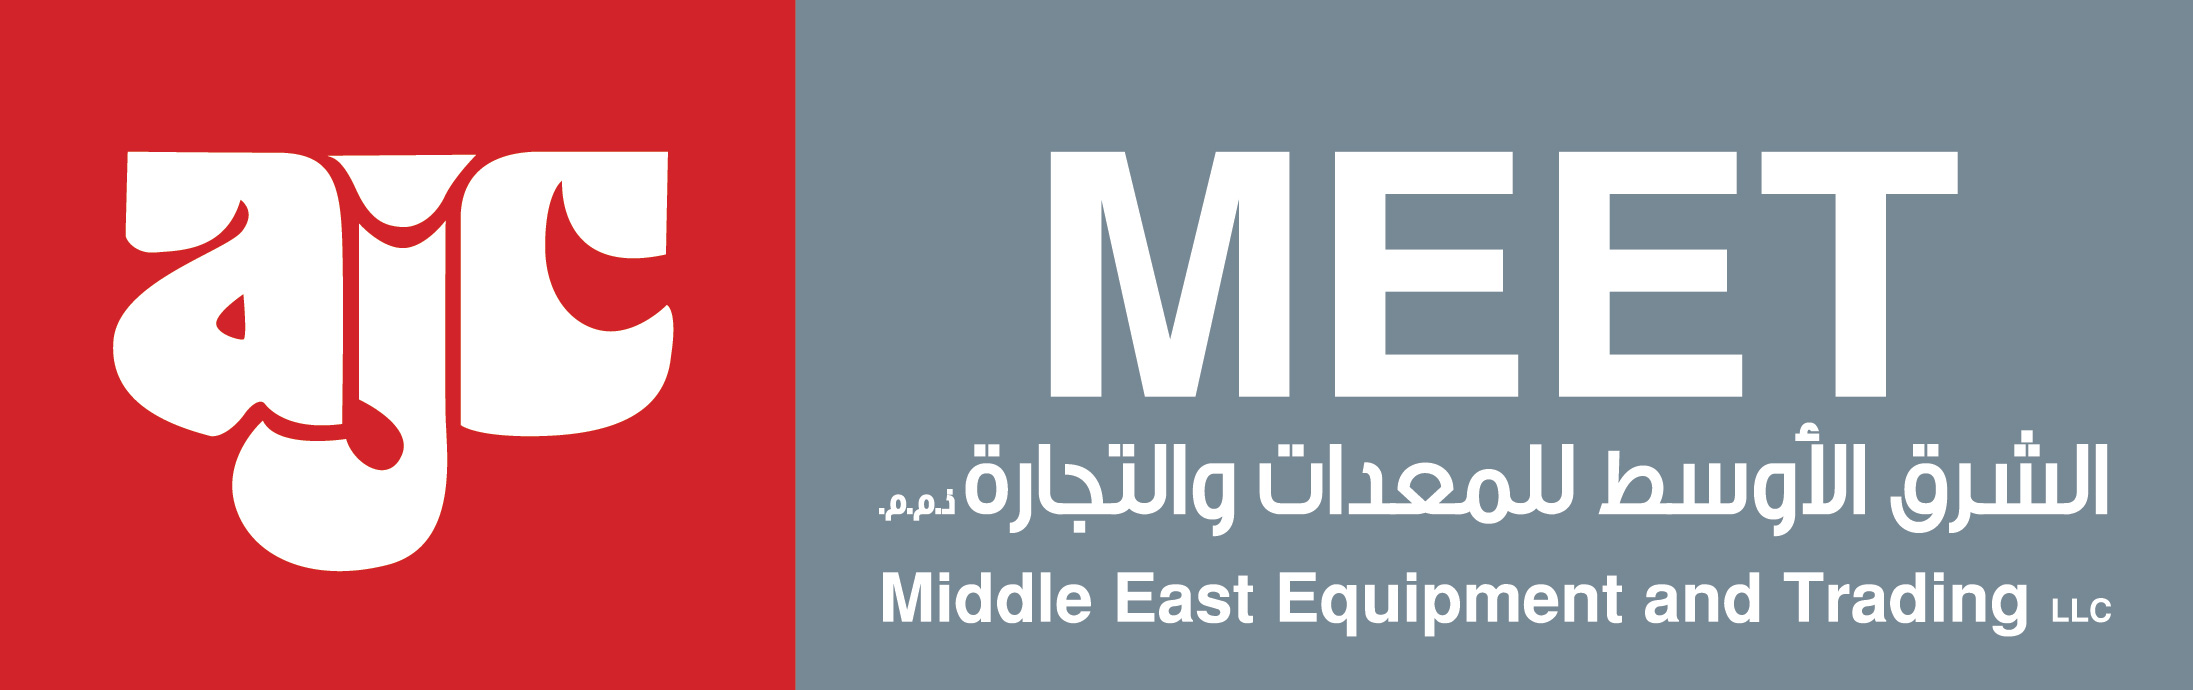 Middle East Equipment & Trading